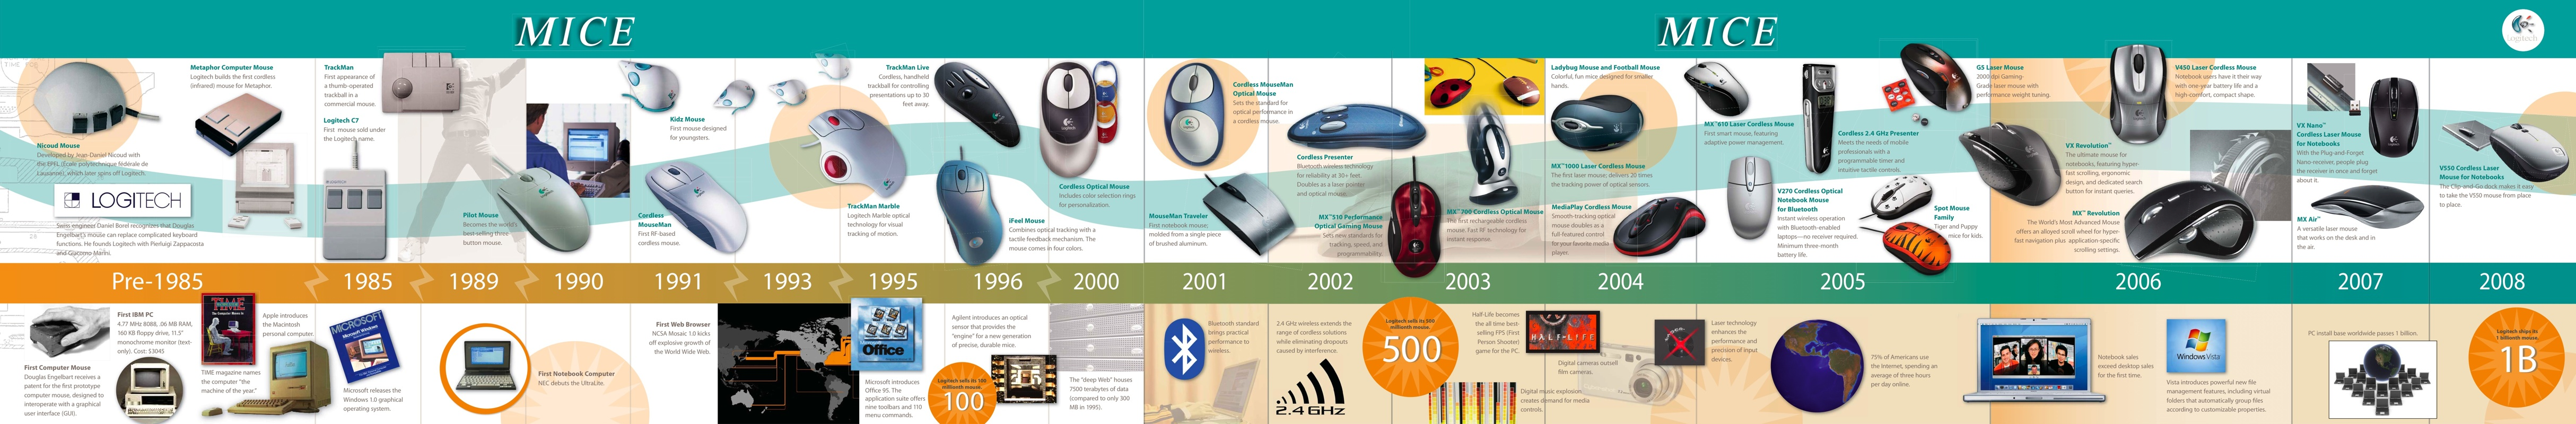 Evolution of Personal Computers and Game Systems